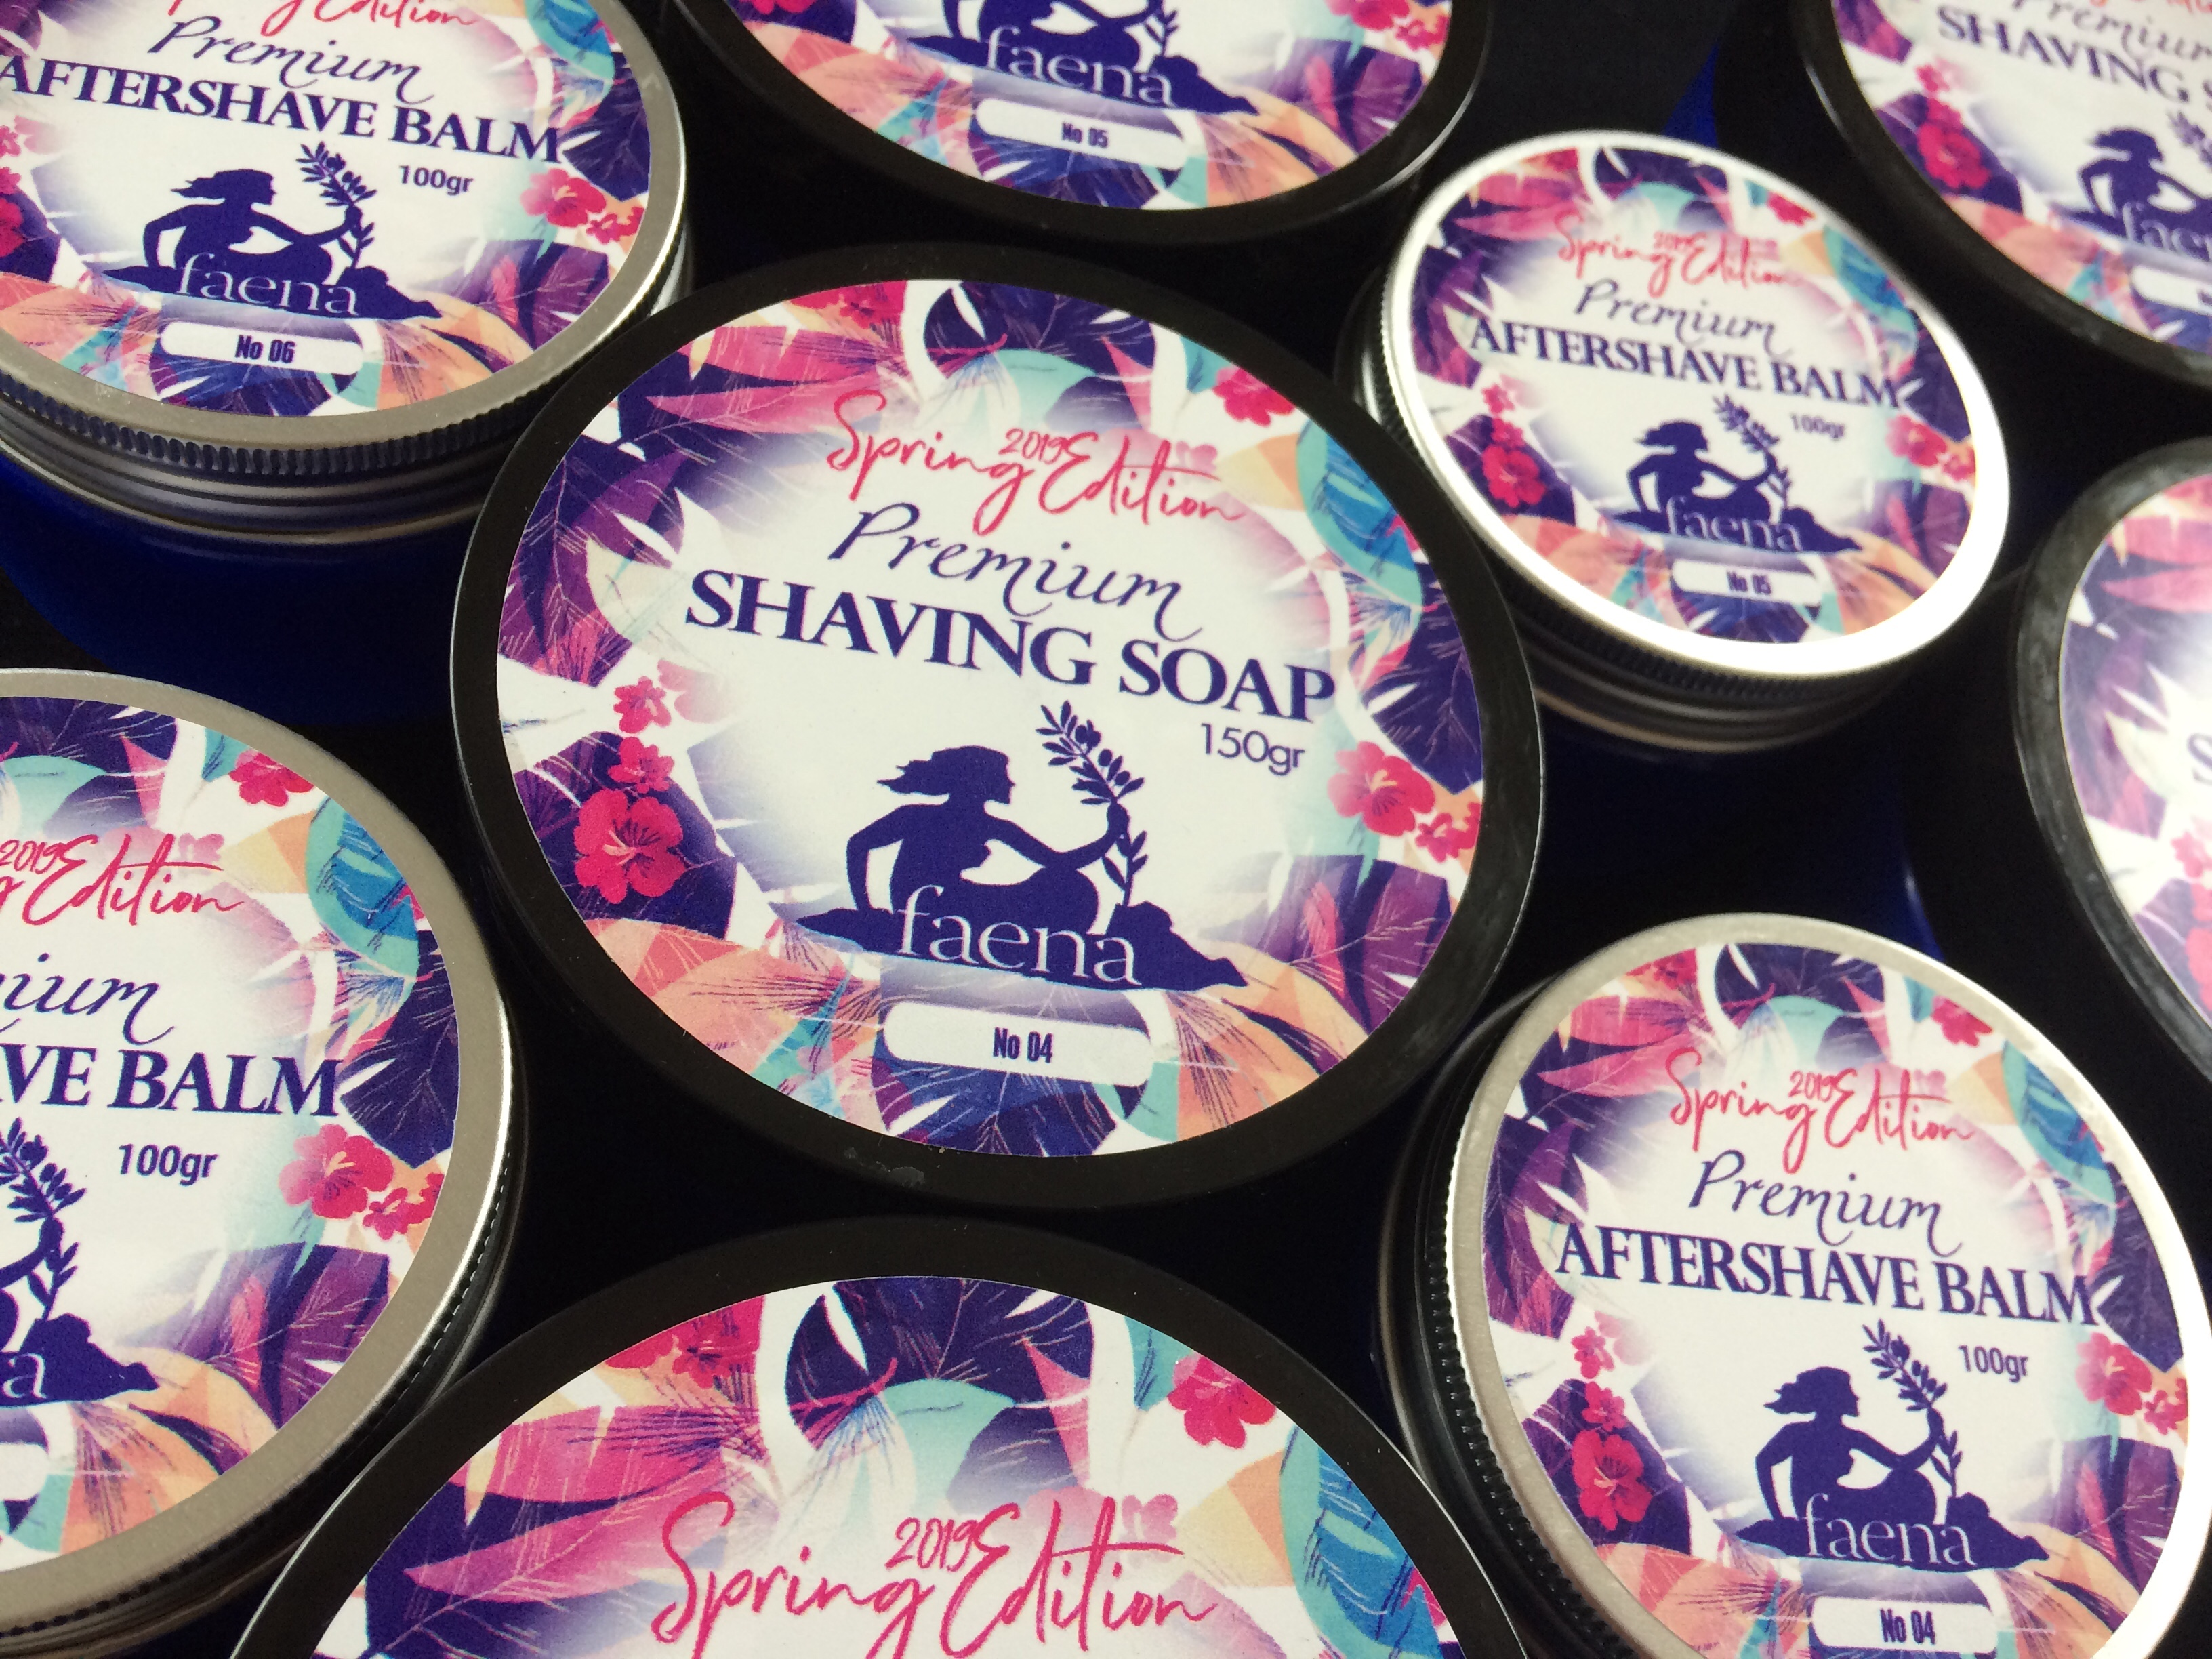 Faena Spring Limited Edition Shaving Soap and Aftershave Balm | Agent Shave